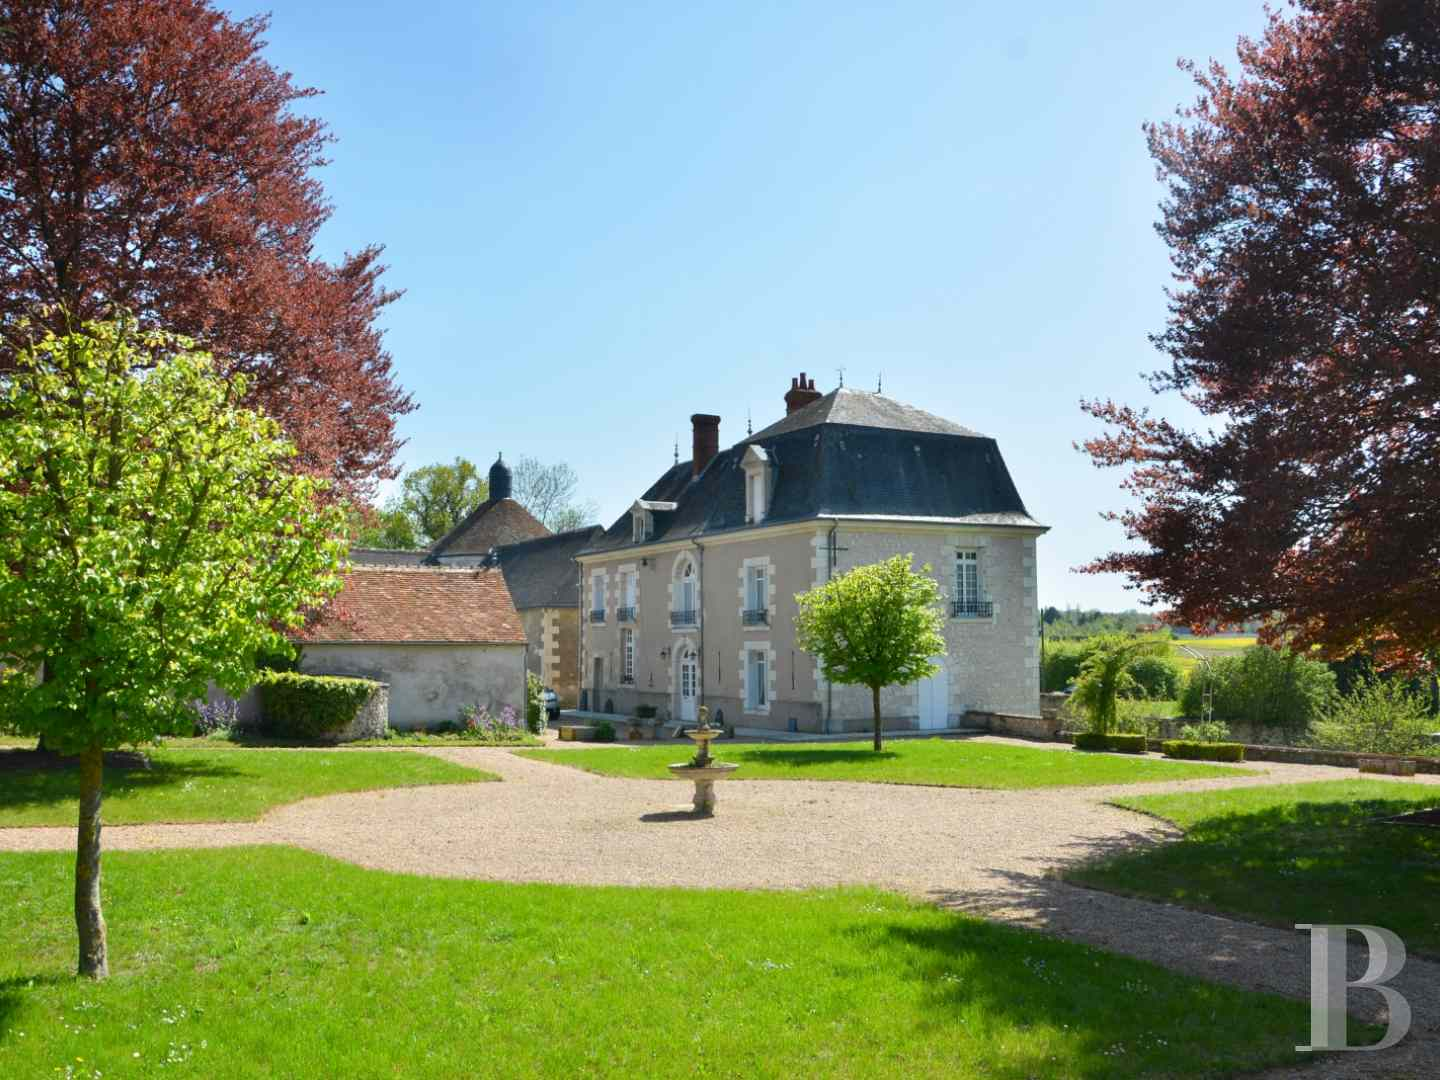 property for sale France center val de loire hunting grounds - 3 zoom